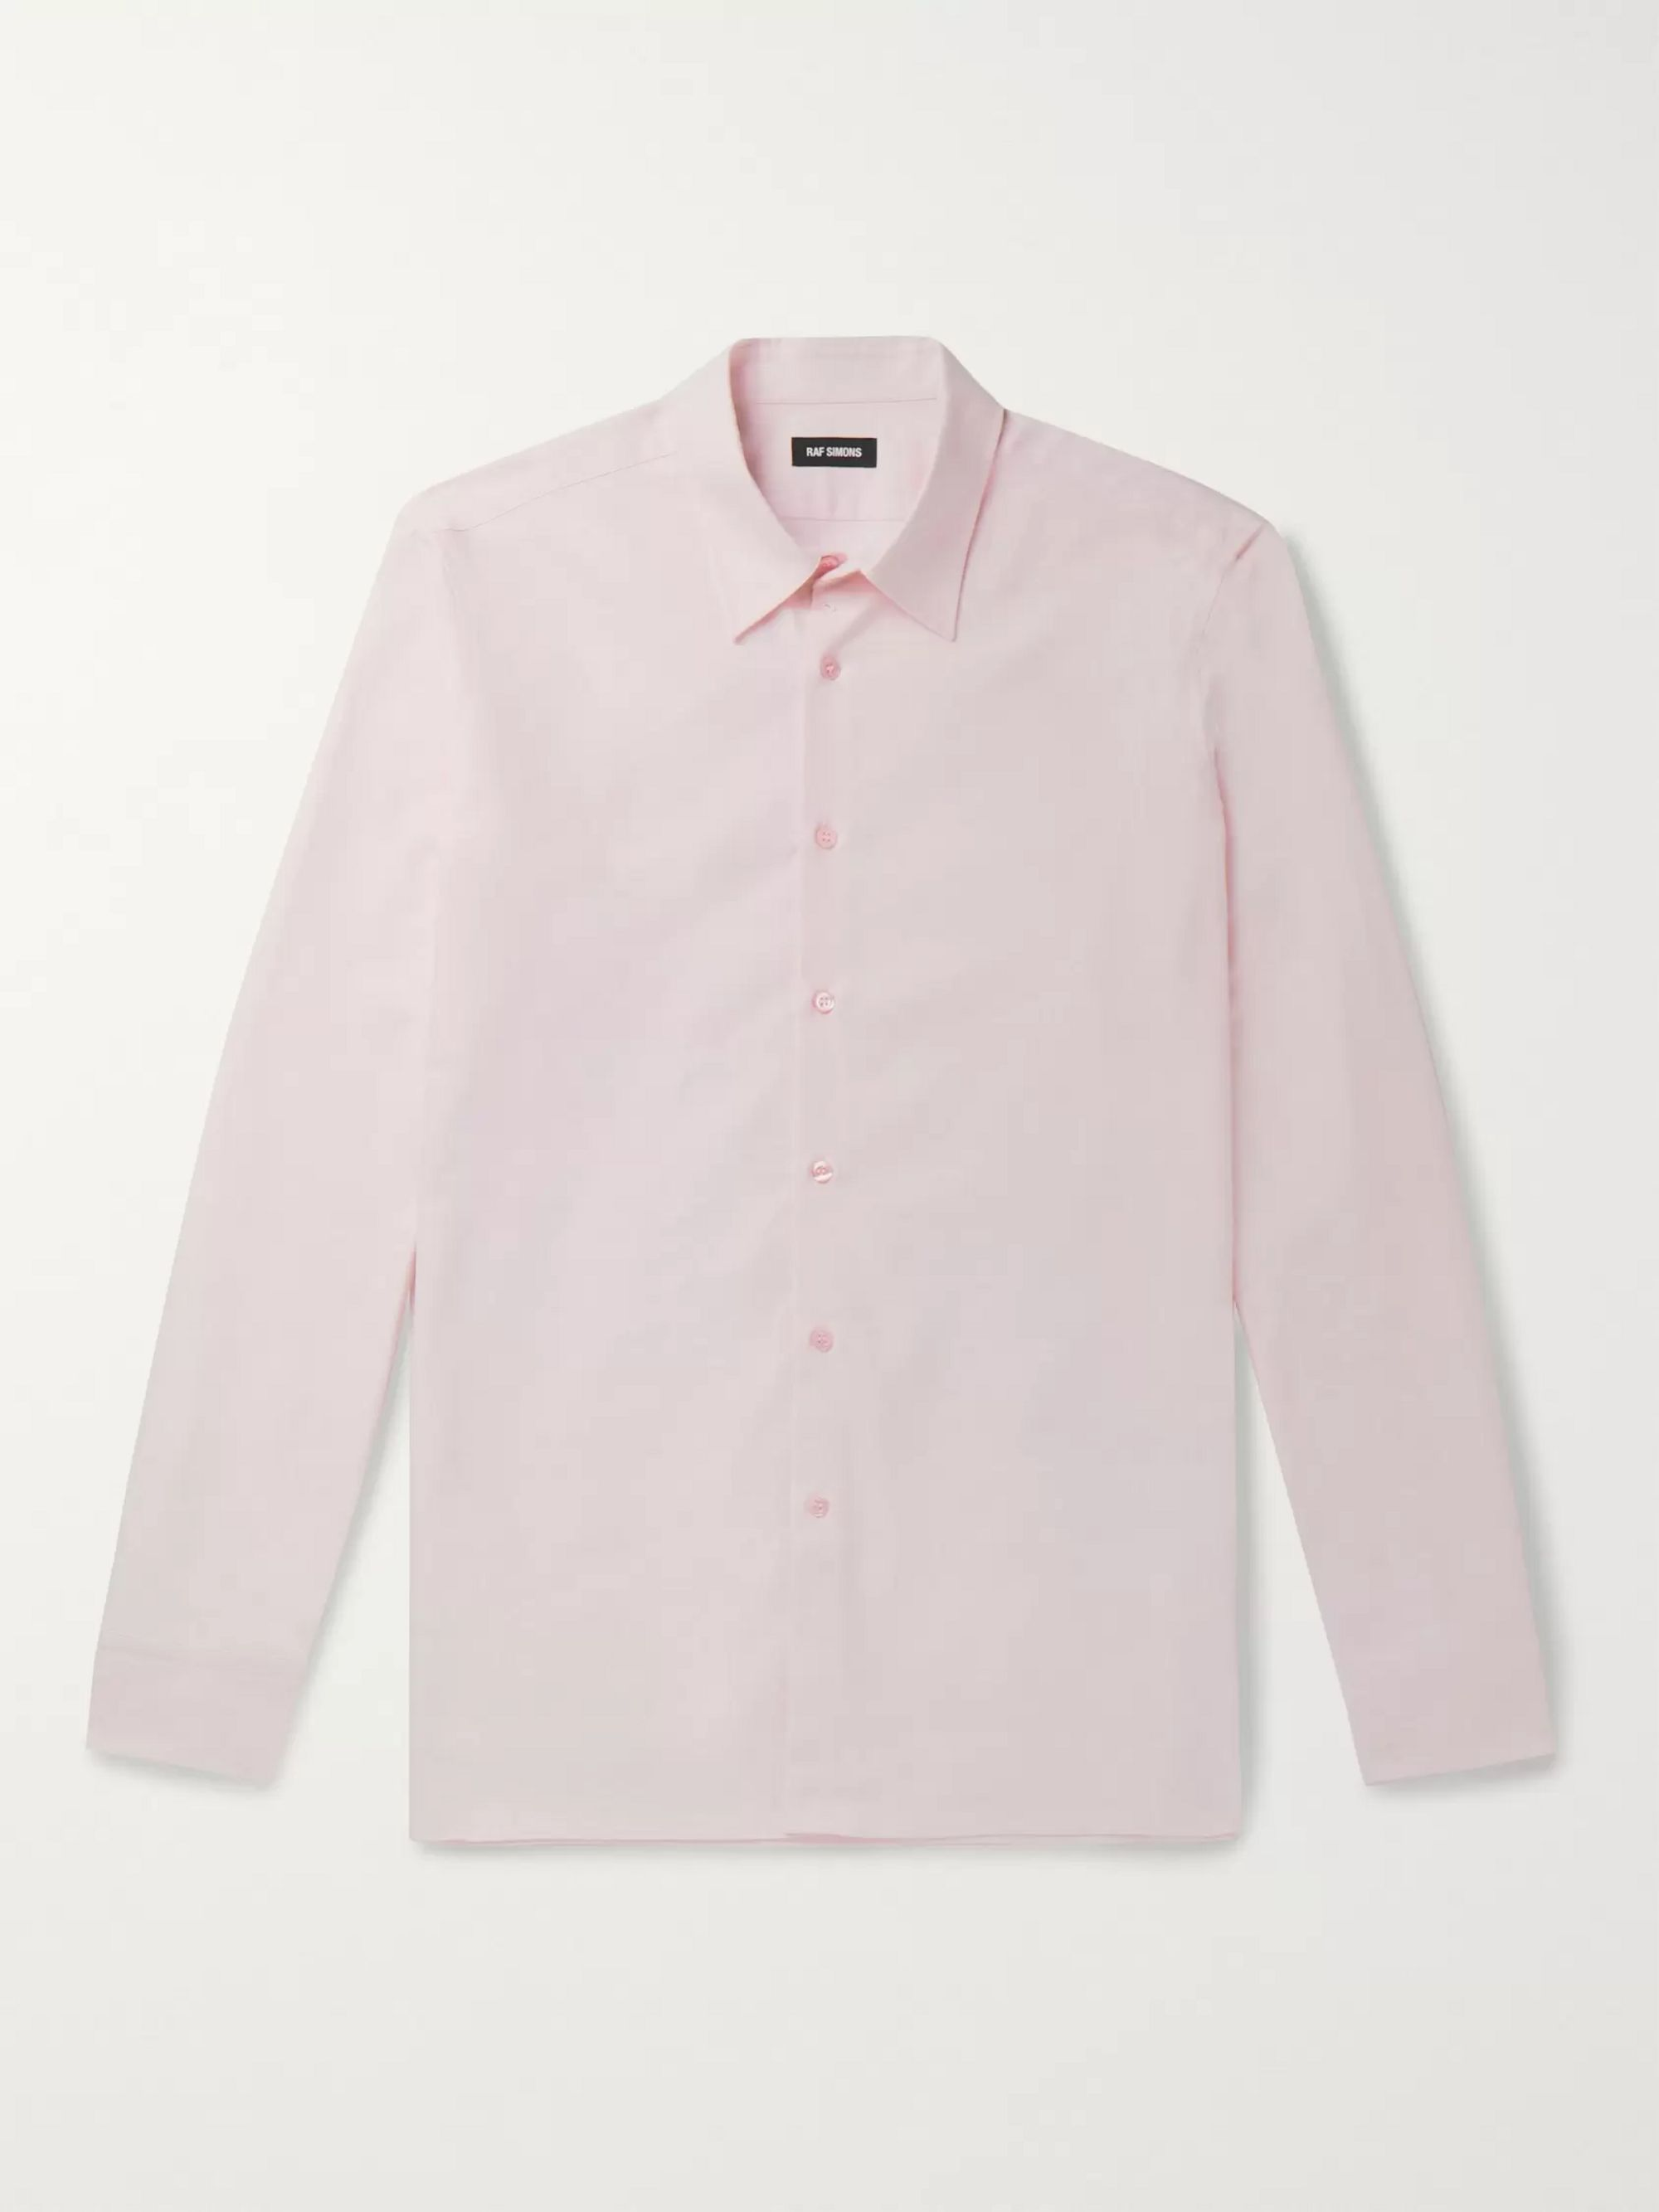 Raf Simons Slim-Fit Logo-Embroidered Cotton Oxford Shirt